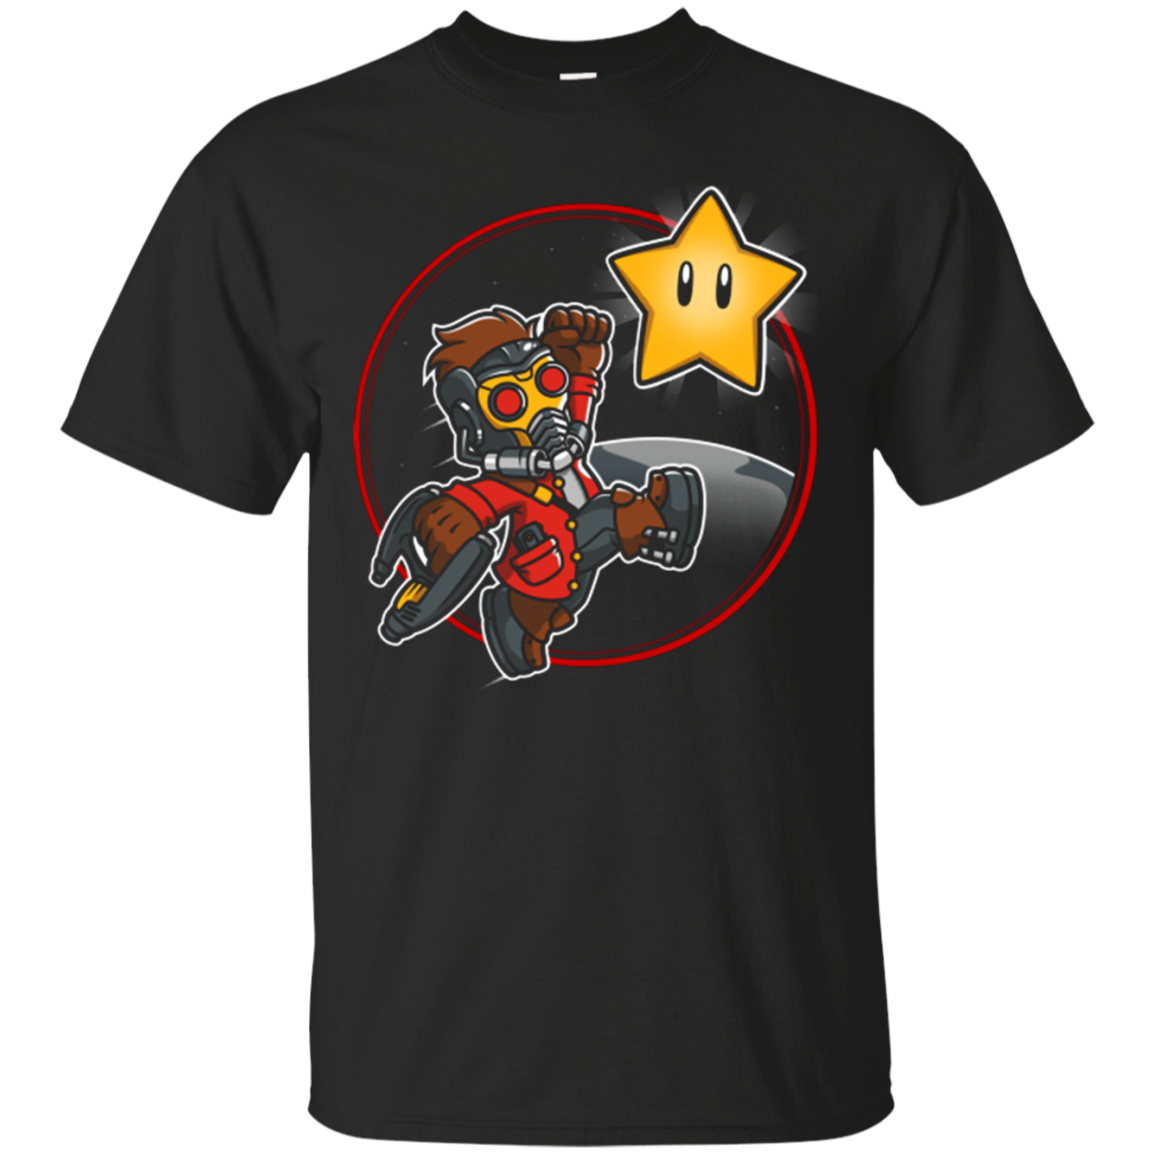 Super Star Lord T-Shirt